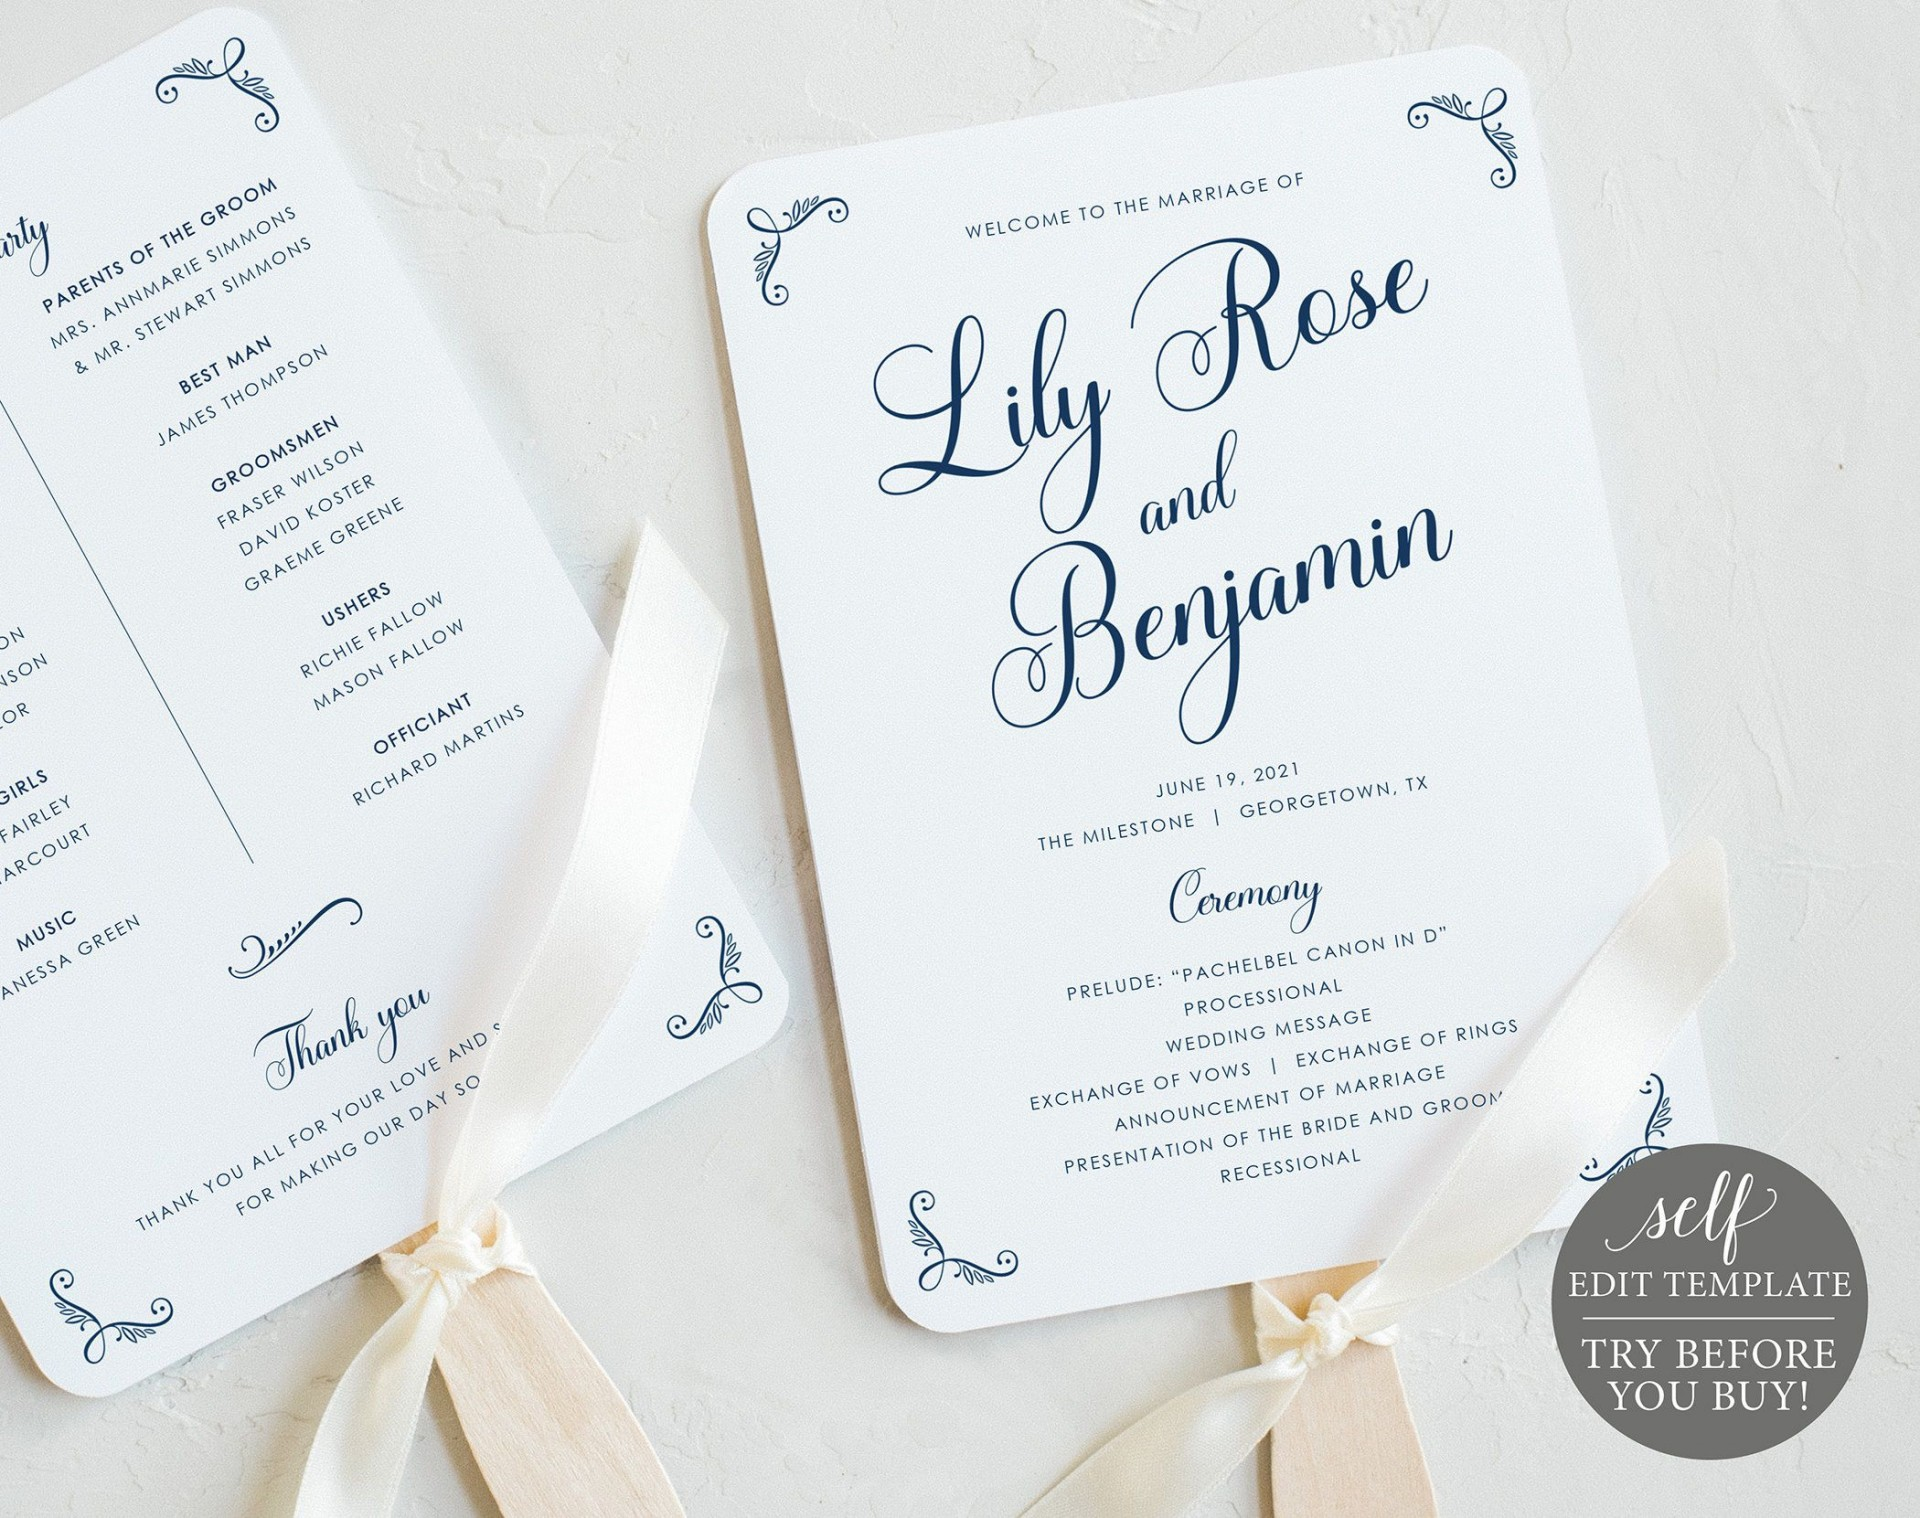 006 Imposing Wedding Program Fan Template Inspiration  Free Word Paddle Downloadable That Can Be Printed1920